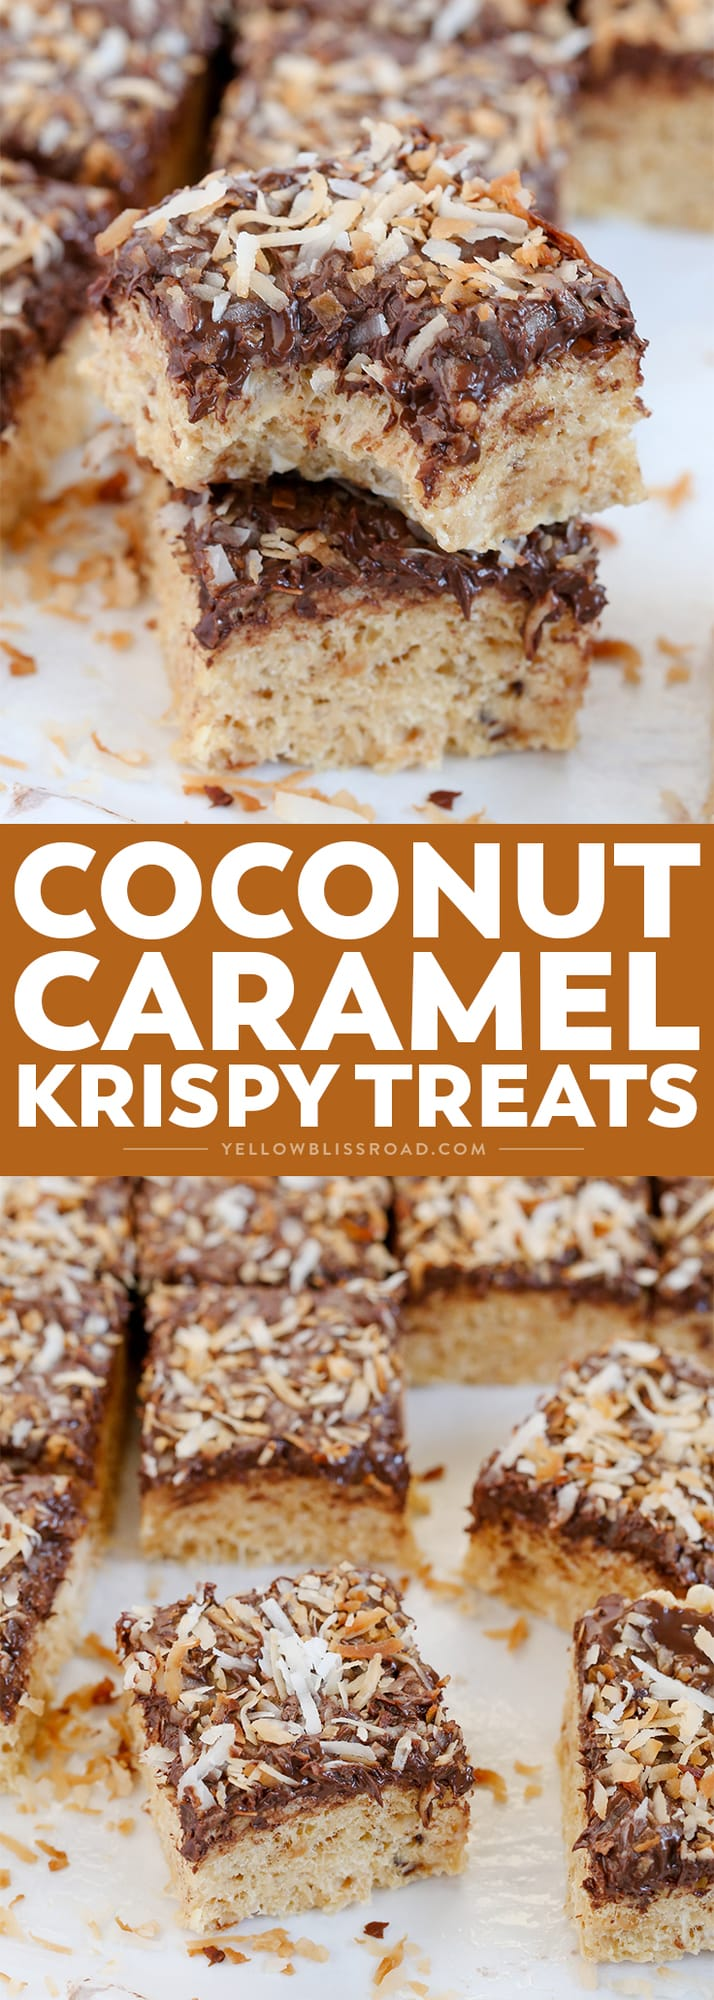 These Chocolate, Coconut Caramel Krispy Treats are inspired by Samoas - a classic favorite Girl Scout Cookie! A fun and yummy dessert that everyone will love.